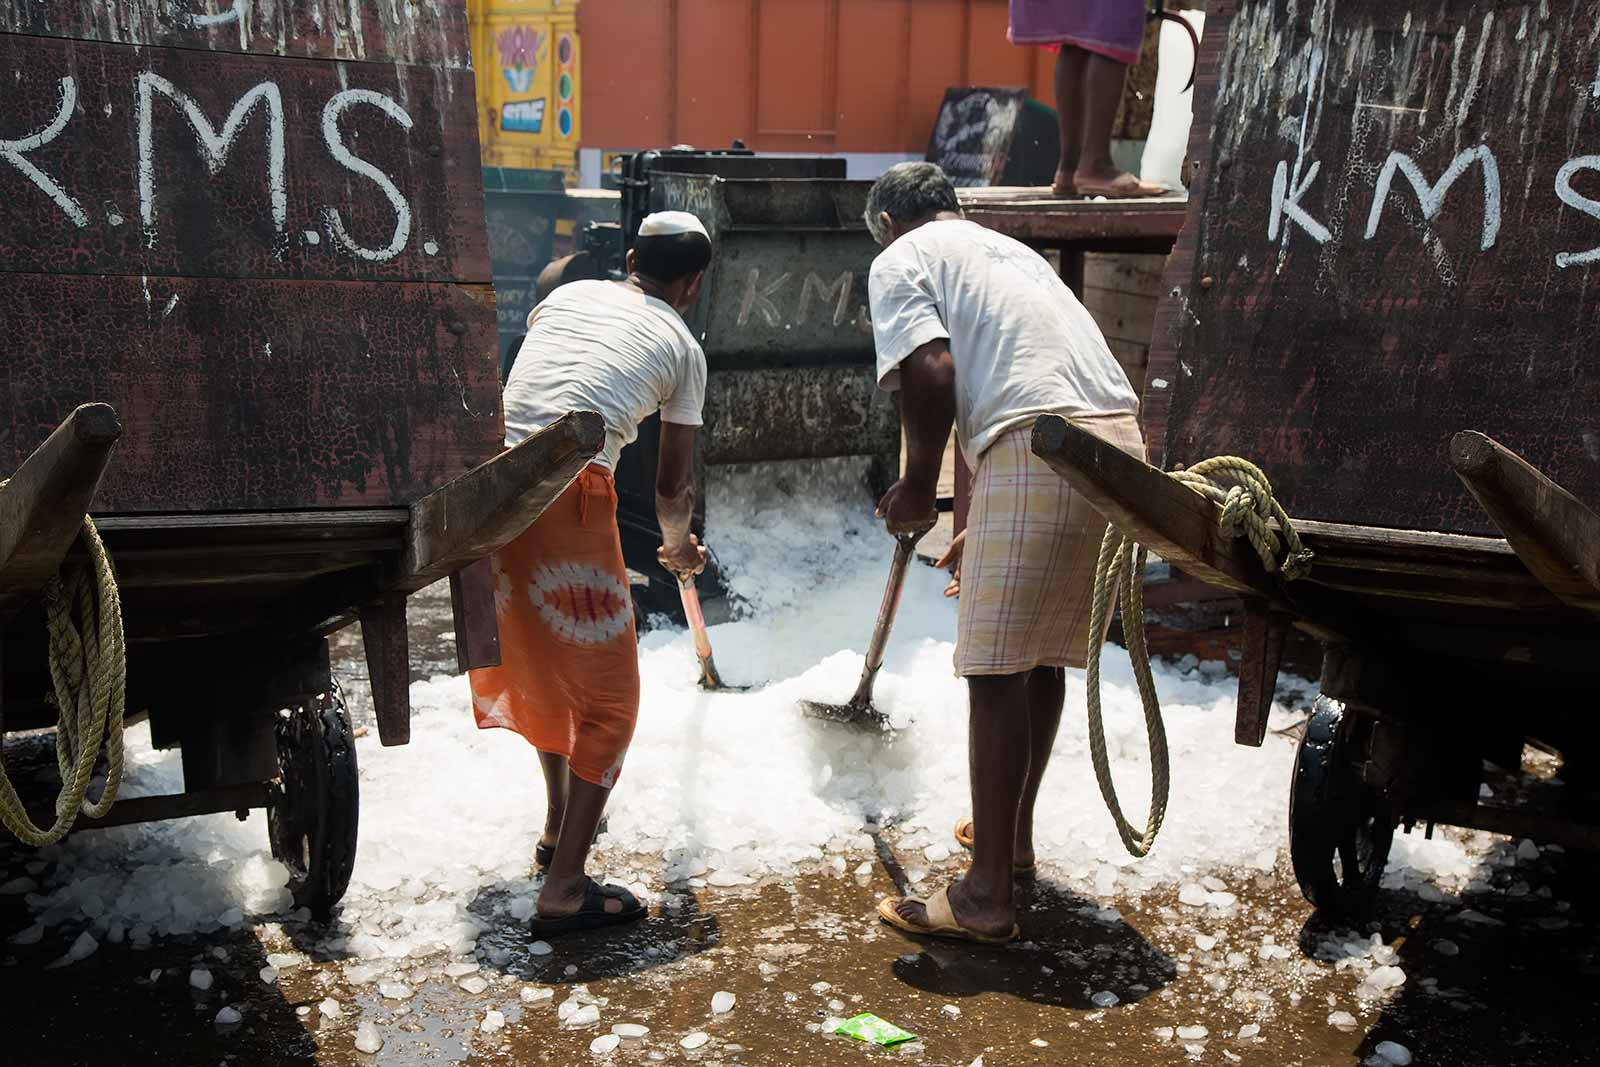 These men at the Sassoon Docks are filling up trailers with crushed ice, which are then pulled to the boats and packed into the stowage for the next trip out to sea.